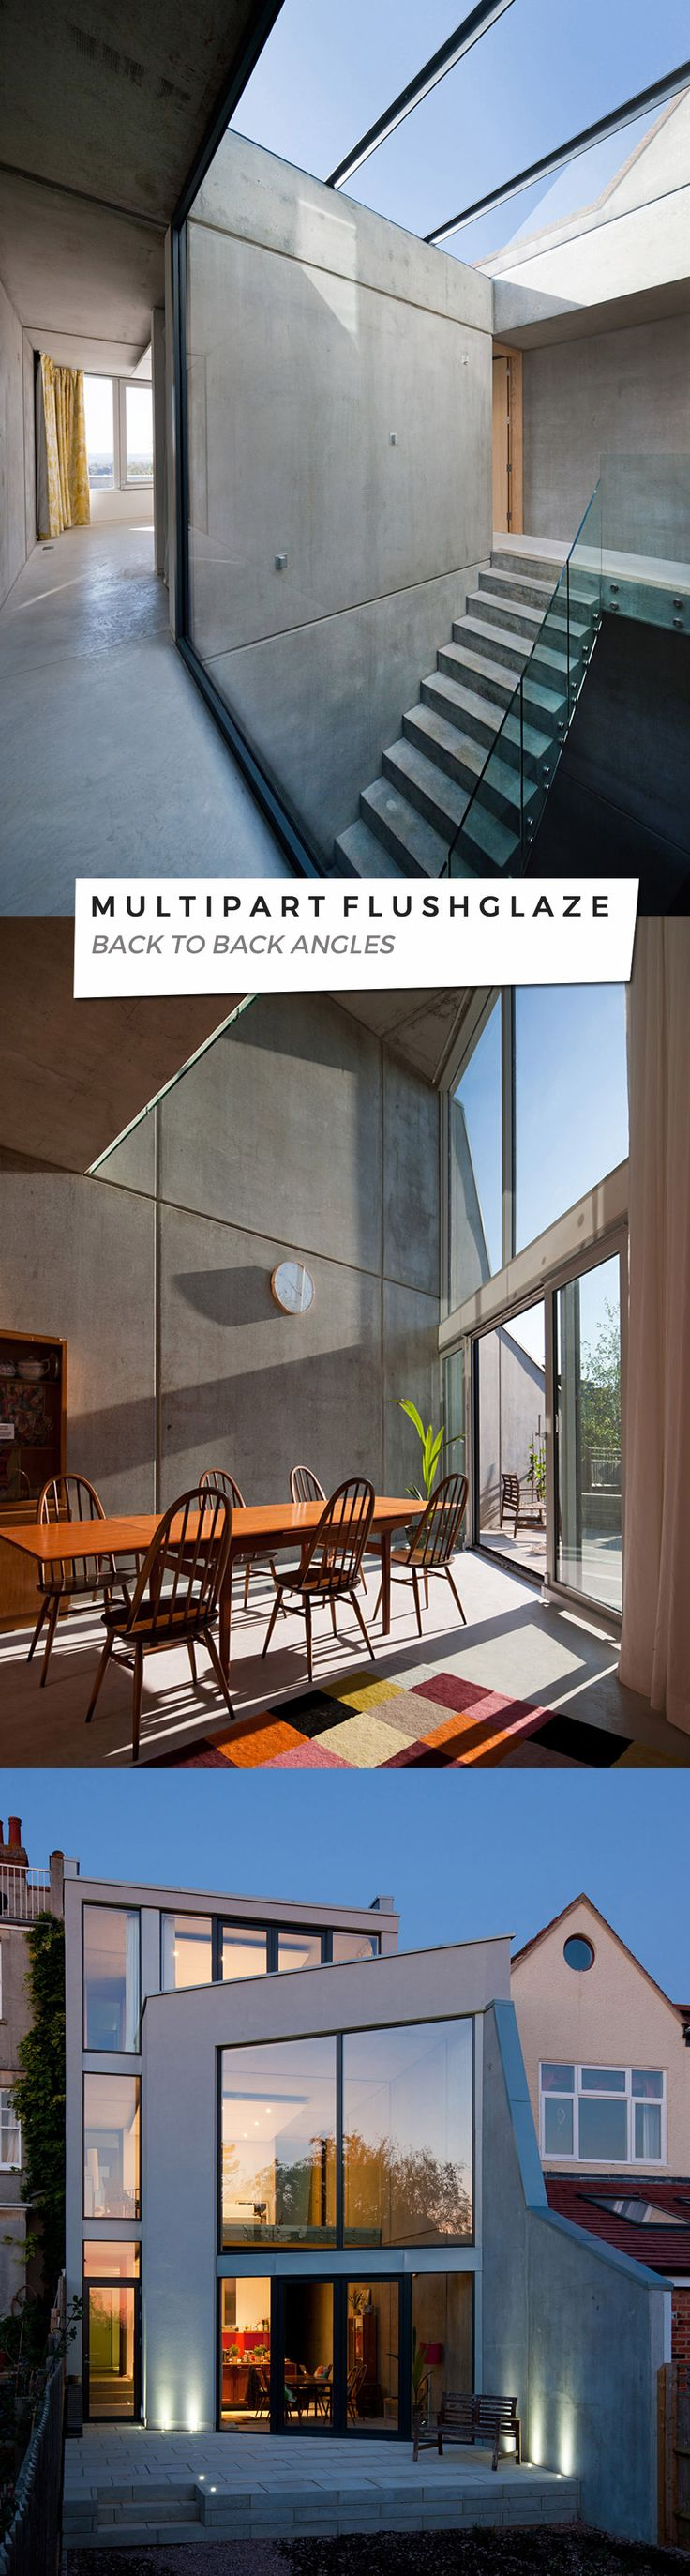 Flushglaze, the original flat roof glass rooflight supplied by Glazing Vision for the project featured on the cover of AJ May edition. Concrete House Adrian James Architects Oxford